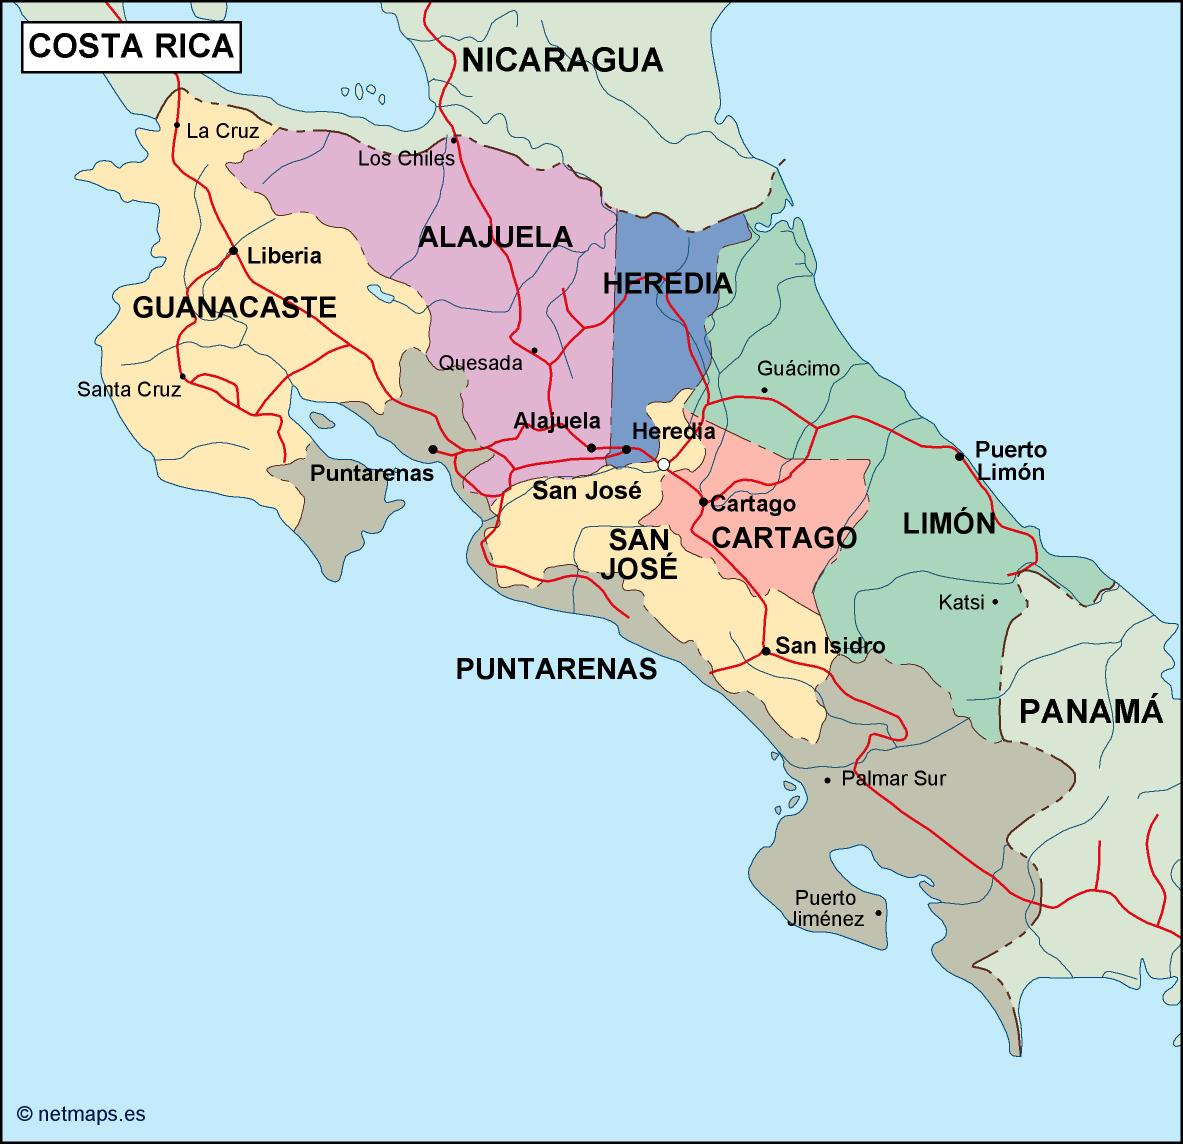 costa rica political map. Eps Illustrator Map | Vector World Maps